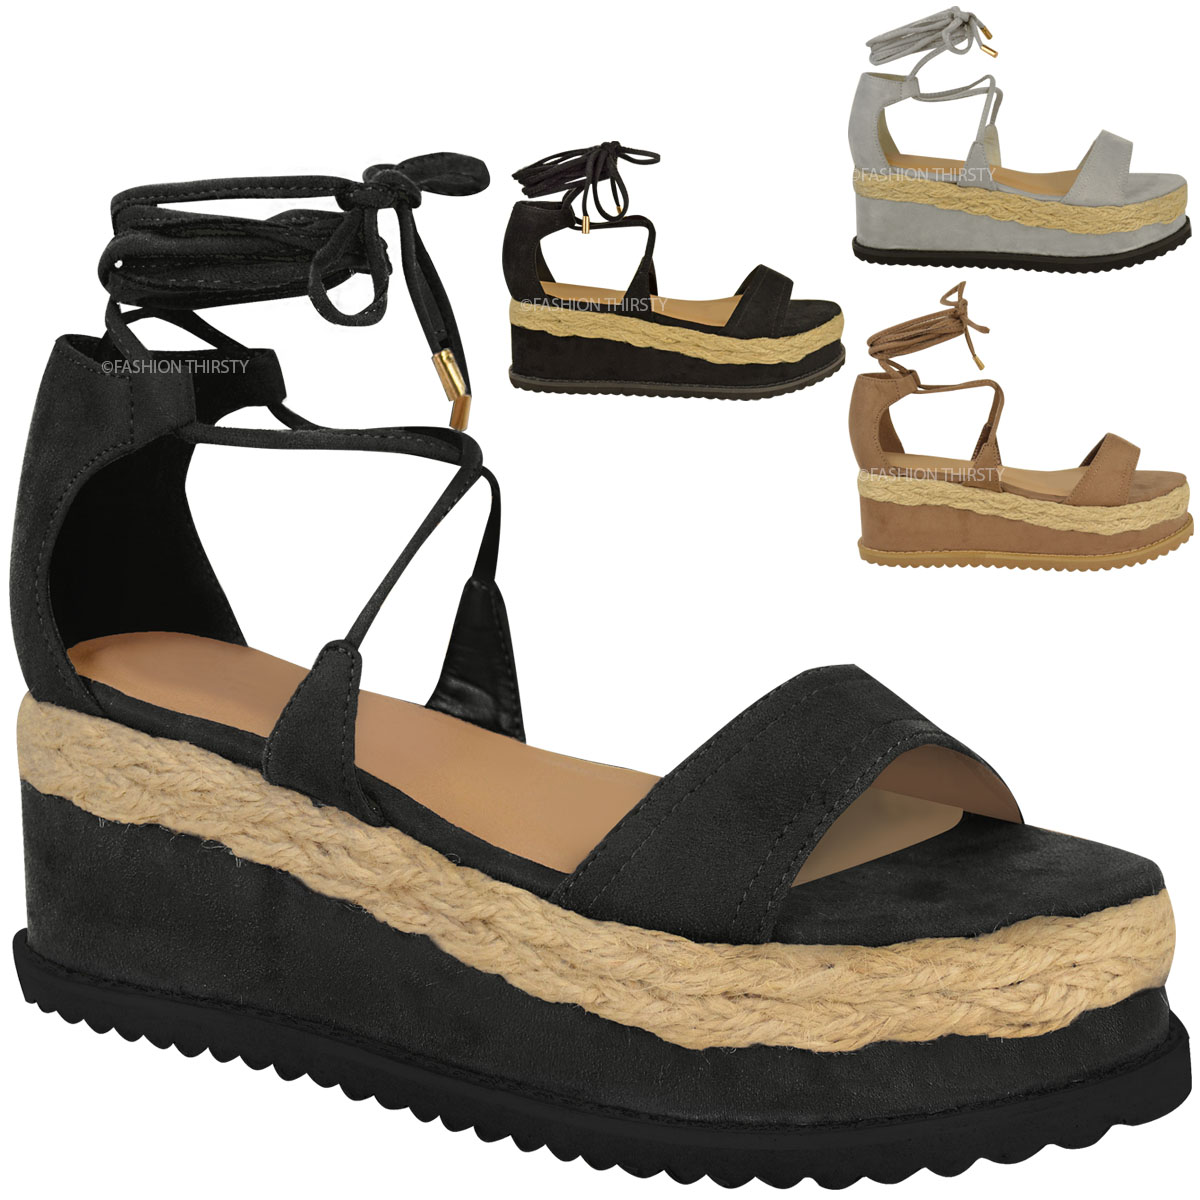 damen espadrille sandalen mit keilabsatz plateausohle schn rung am kn chel ebay. Black Bedroom Furniture Sets. Home Design Ideas